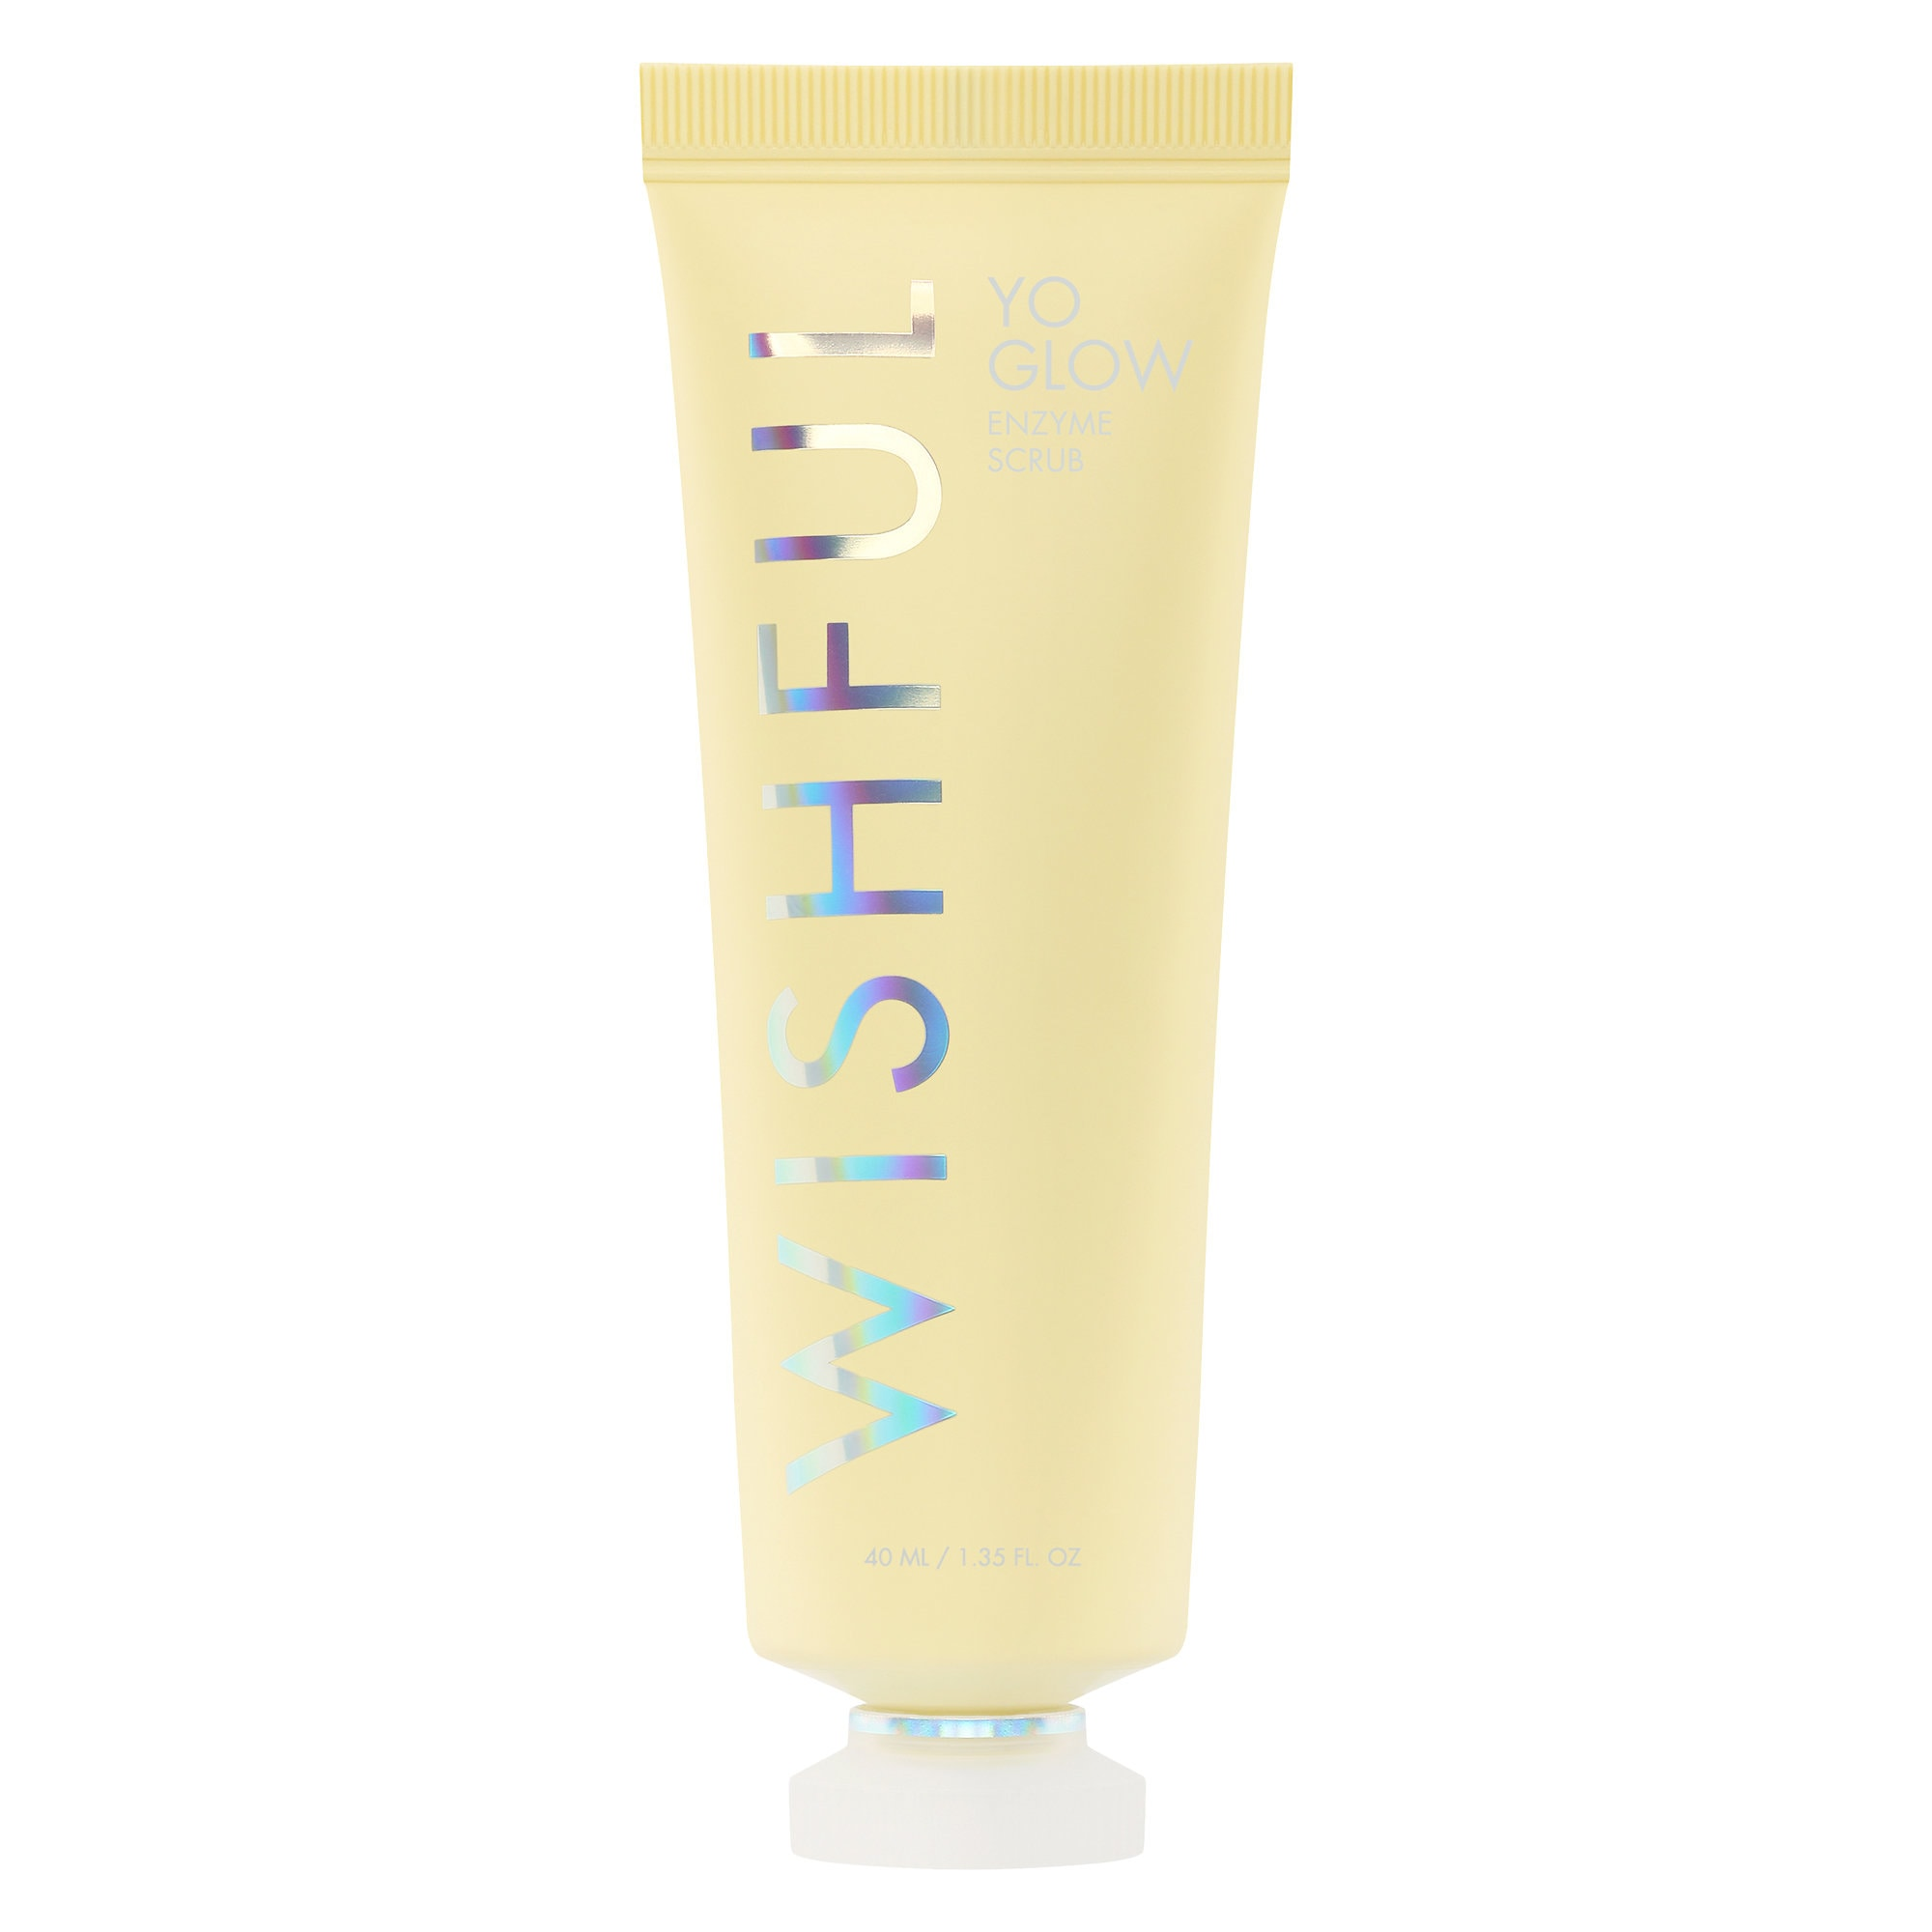 Wishful - Mini Yo Glow Facial Enzyme Scrub